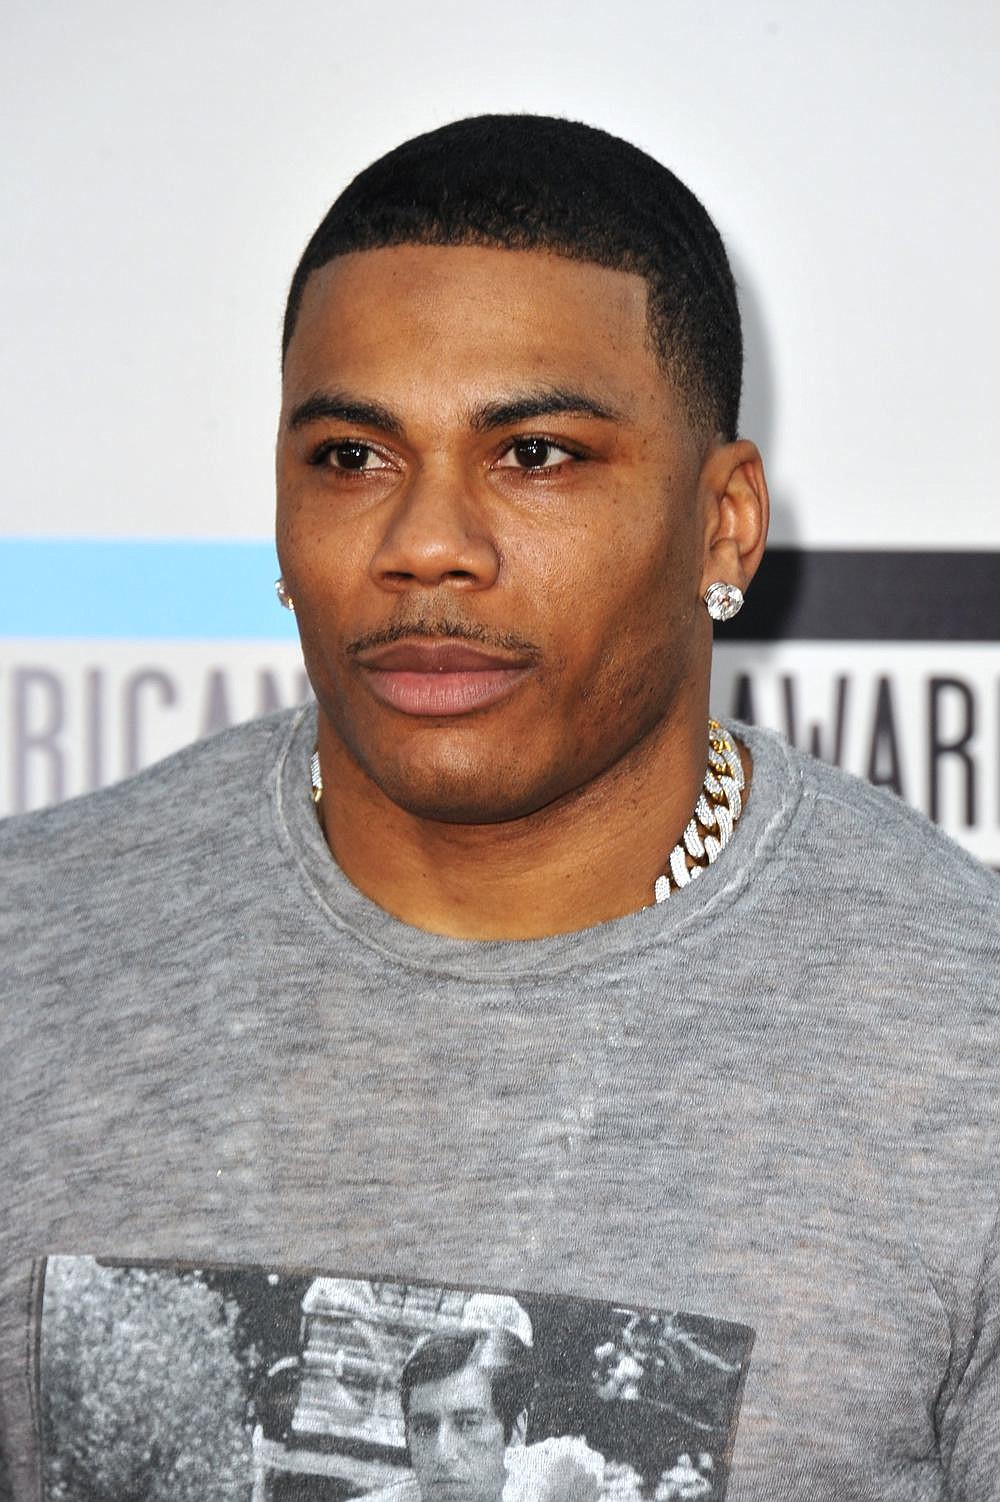 Nelly arrives at the American Music Awards at the Nokia Theatre L.A. Live on Sunday, Nov. 24, 2013, in Los Angeles. (Photo by Jordan Strauss/Invision/AP)